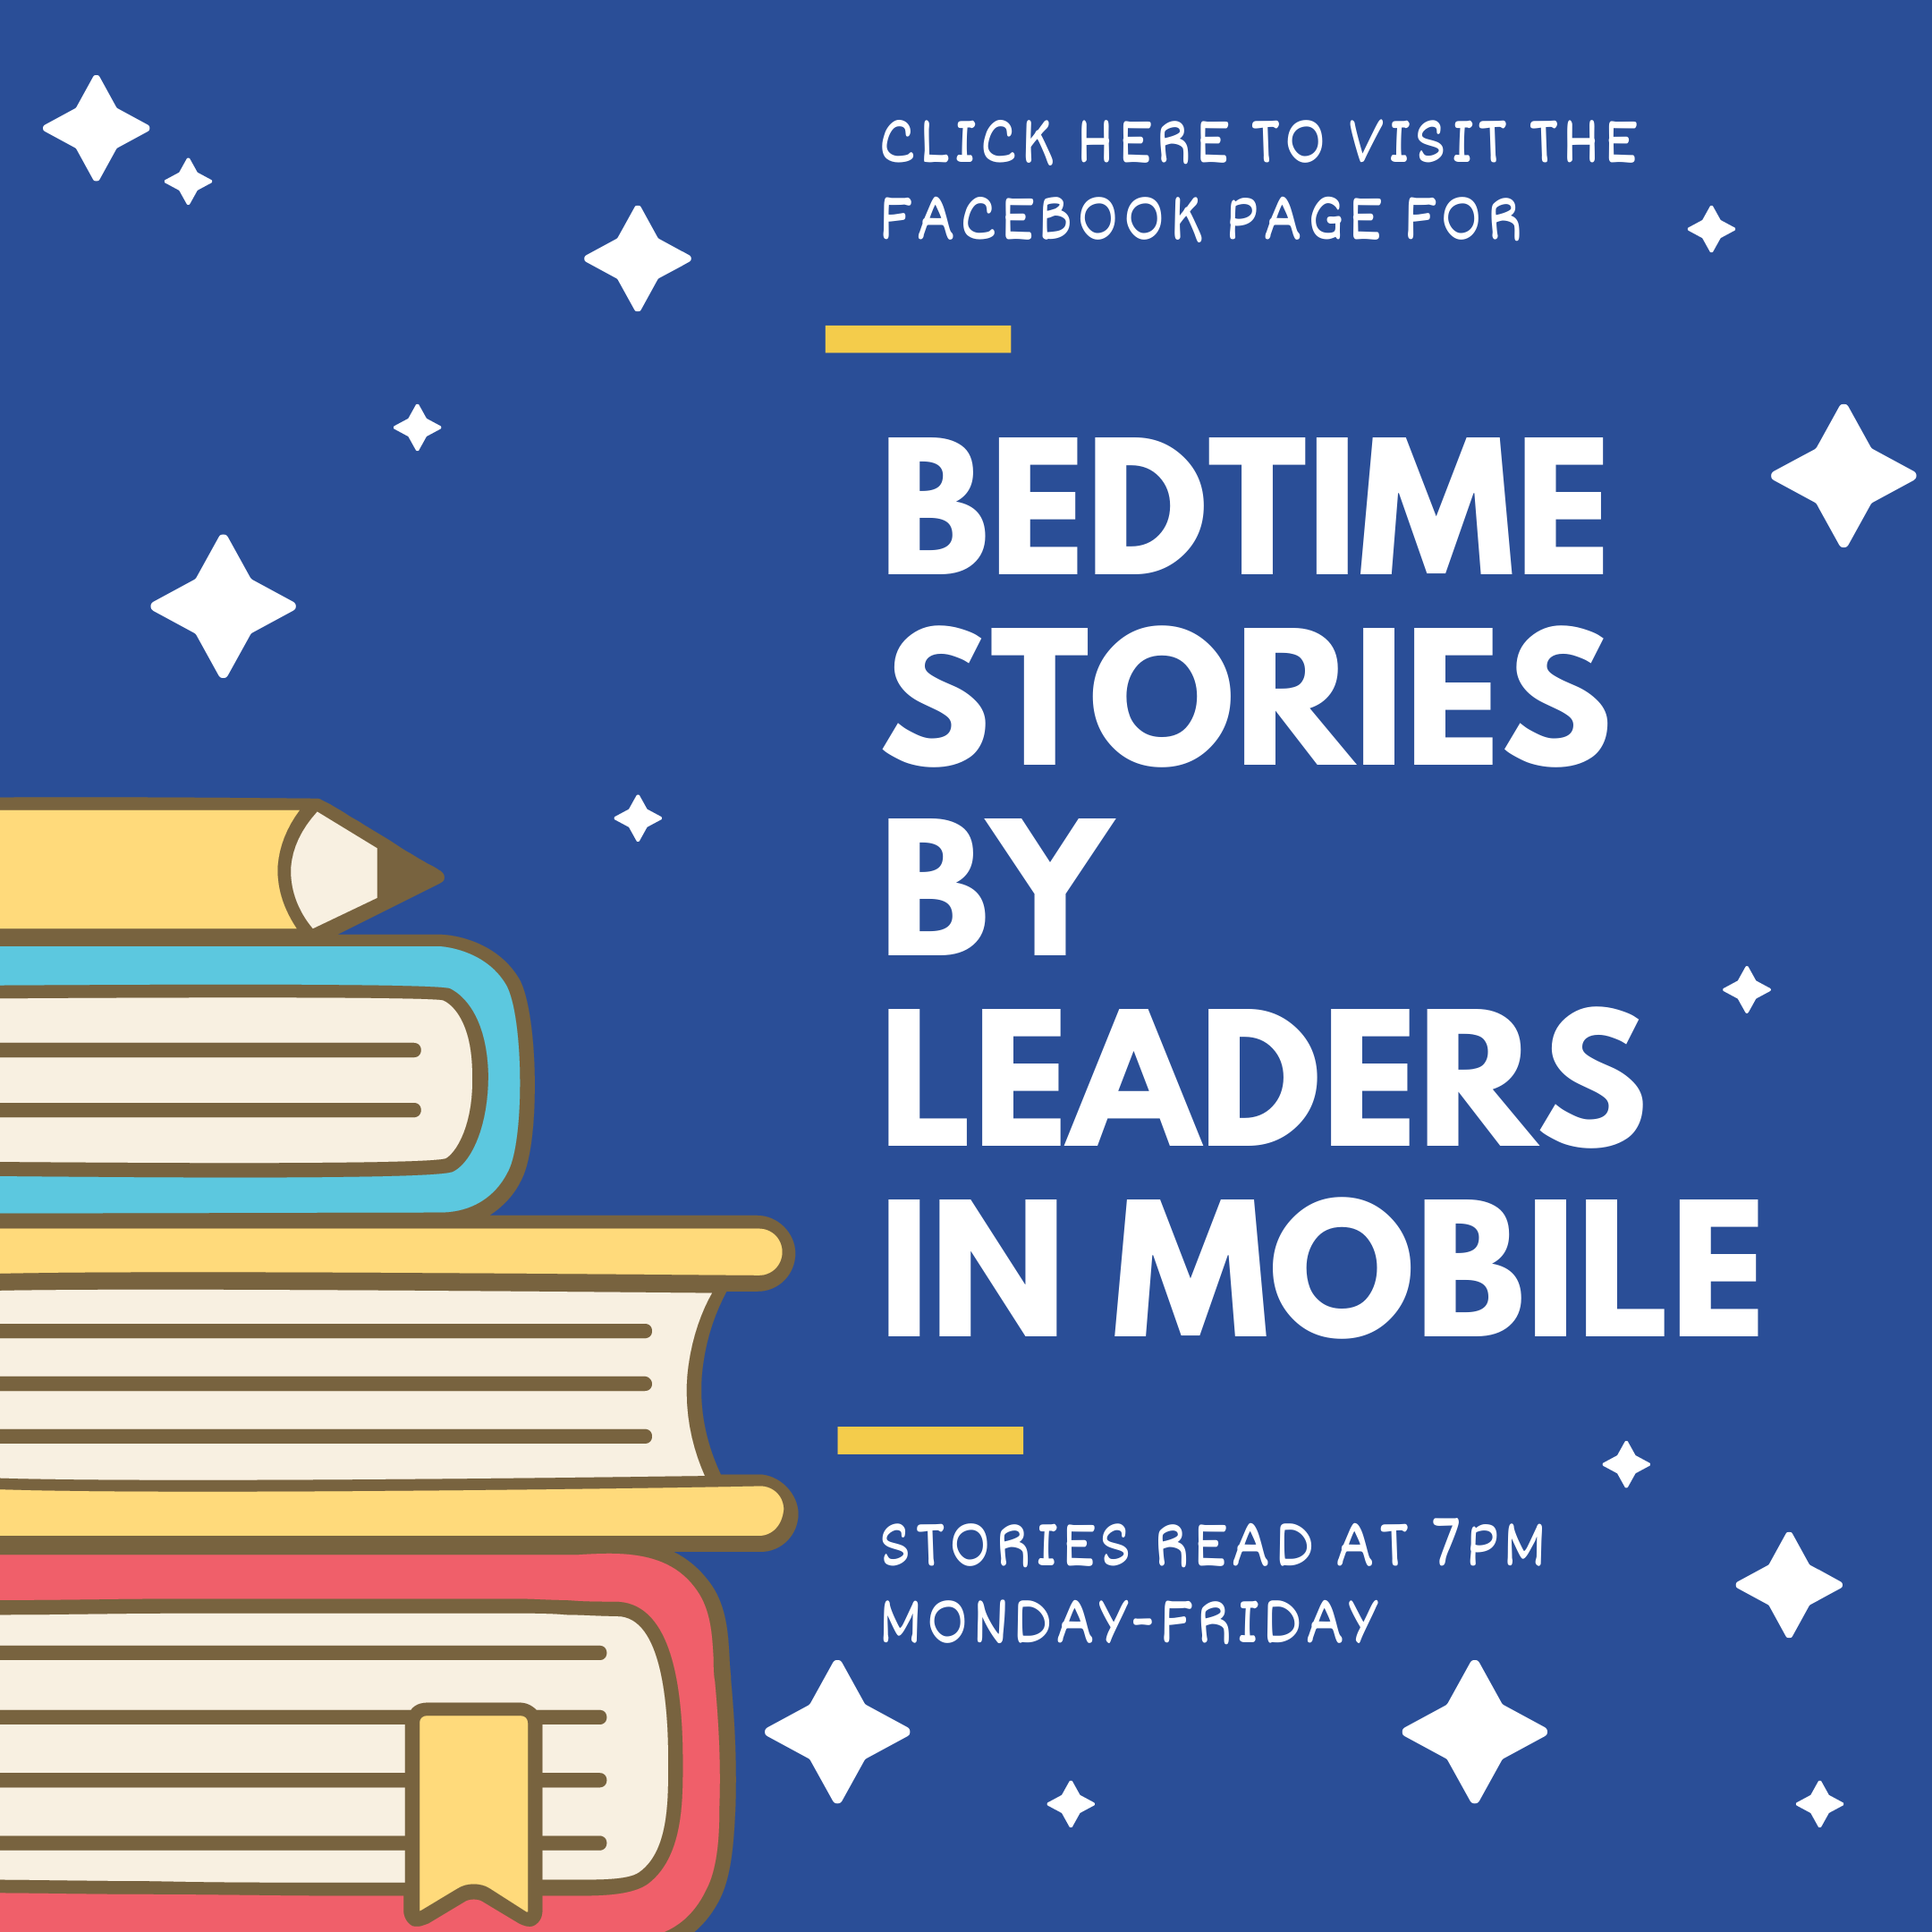 bedtime stories by mobile leaders